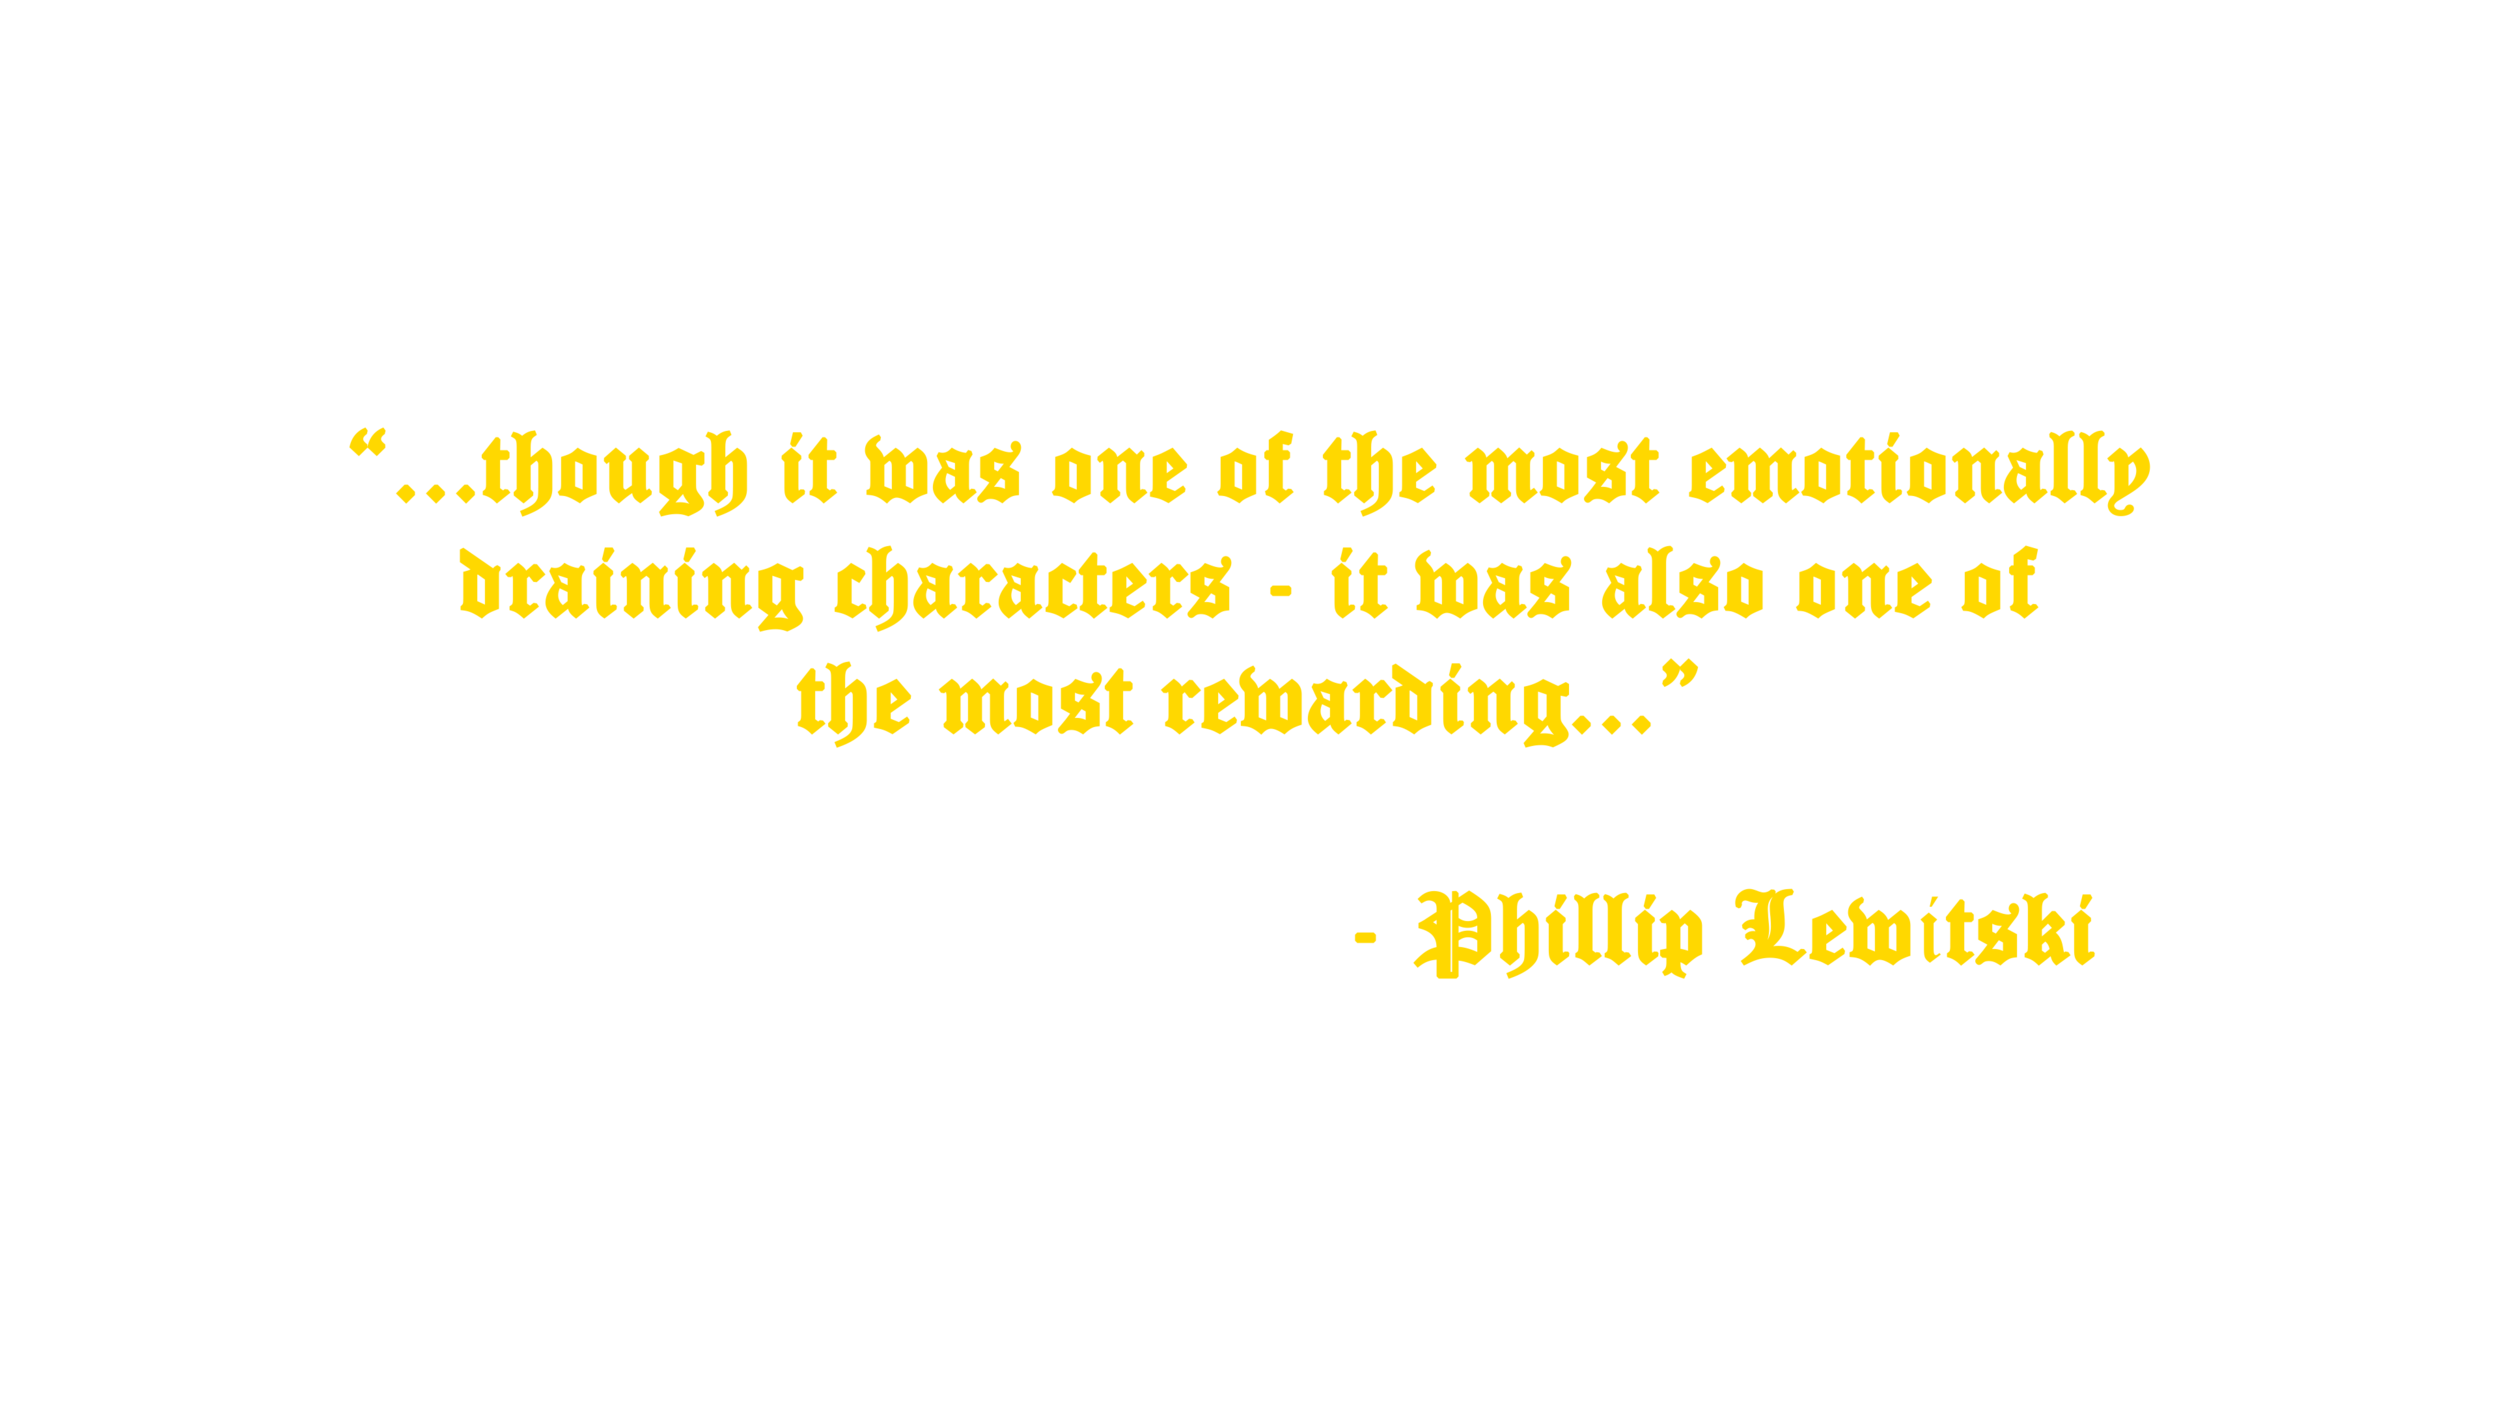 agentleman_credits_v2_yellowphillipquote.png